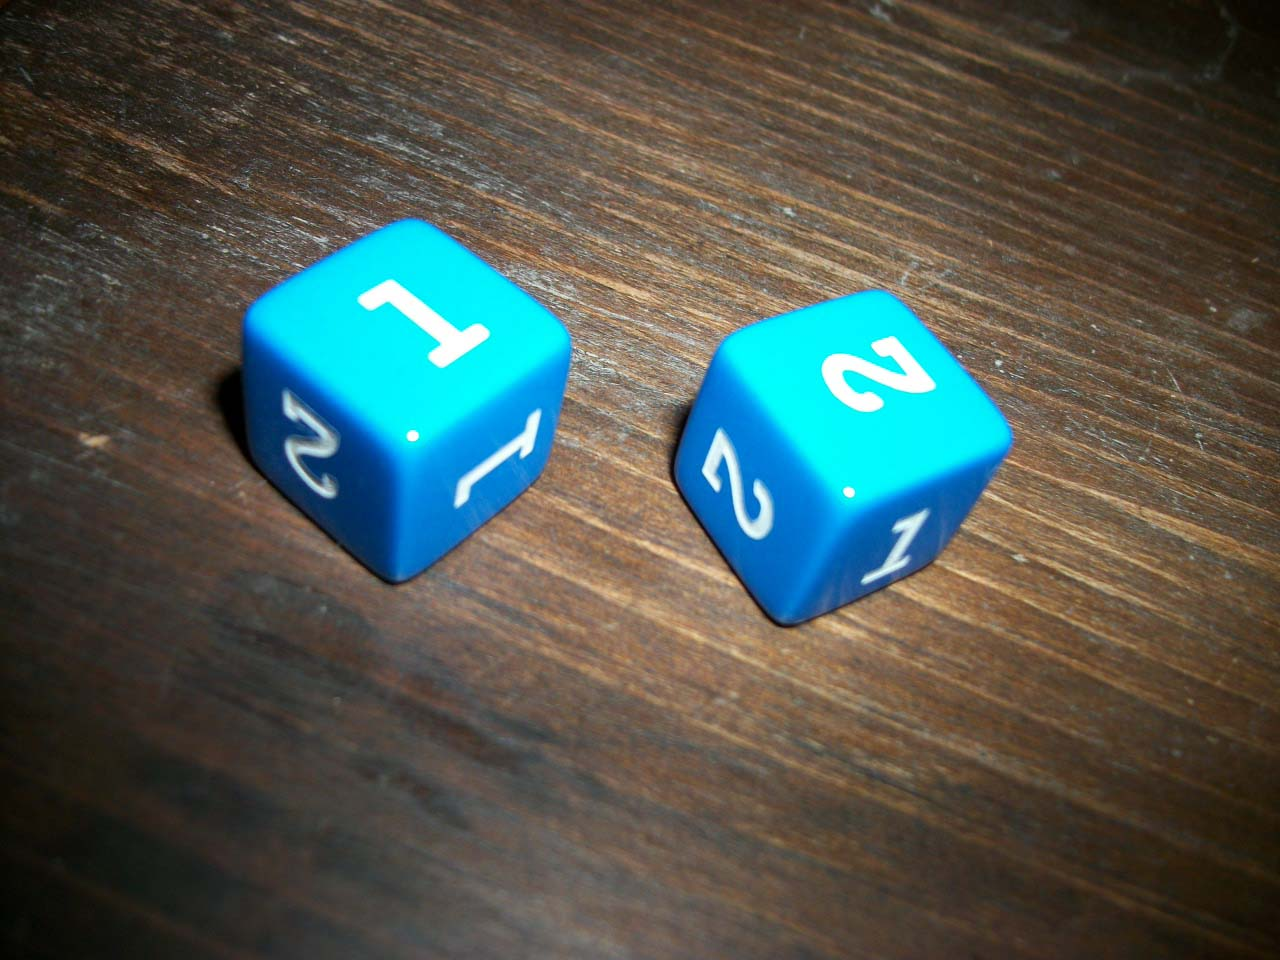 2 sided dice online